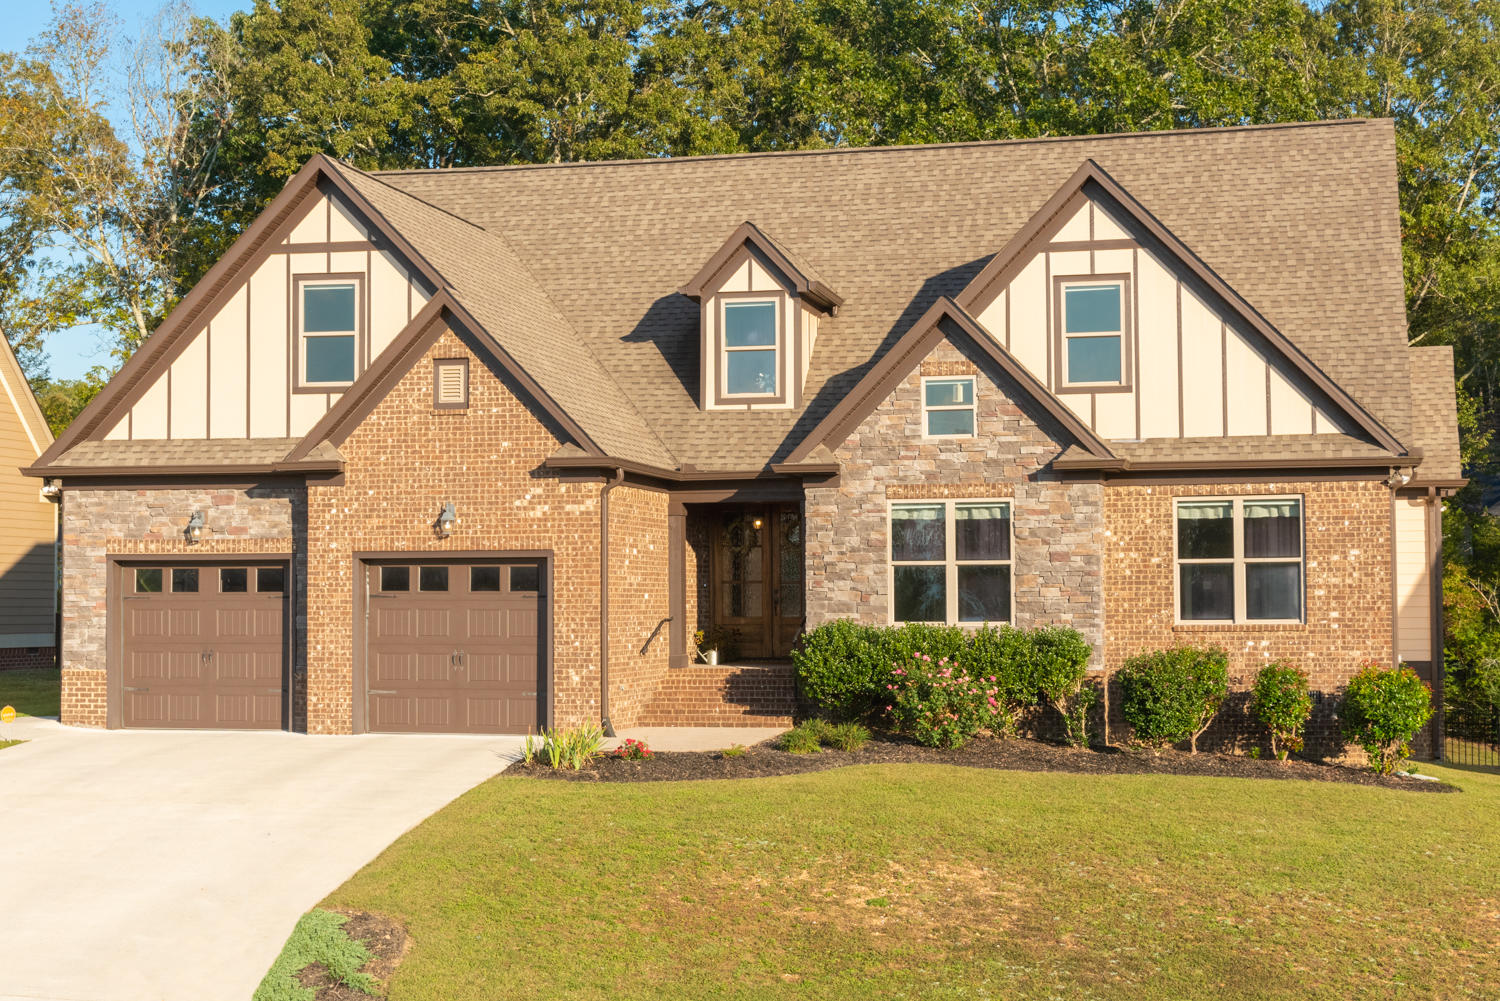 Details for 6270 Stoney River, Harrison, TN 37341